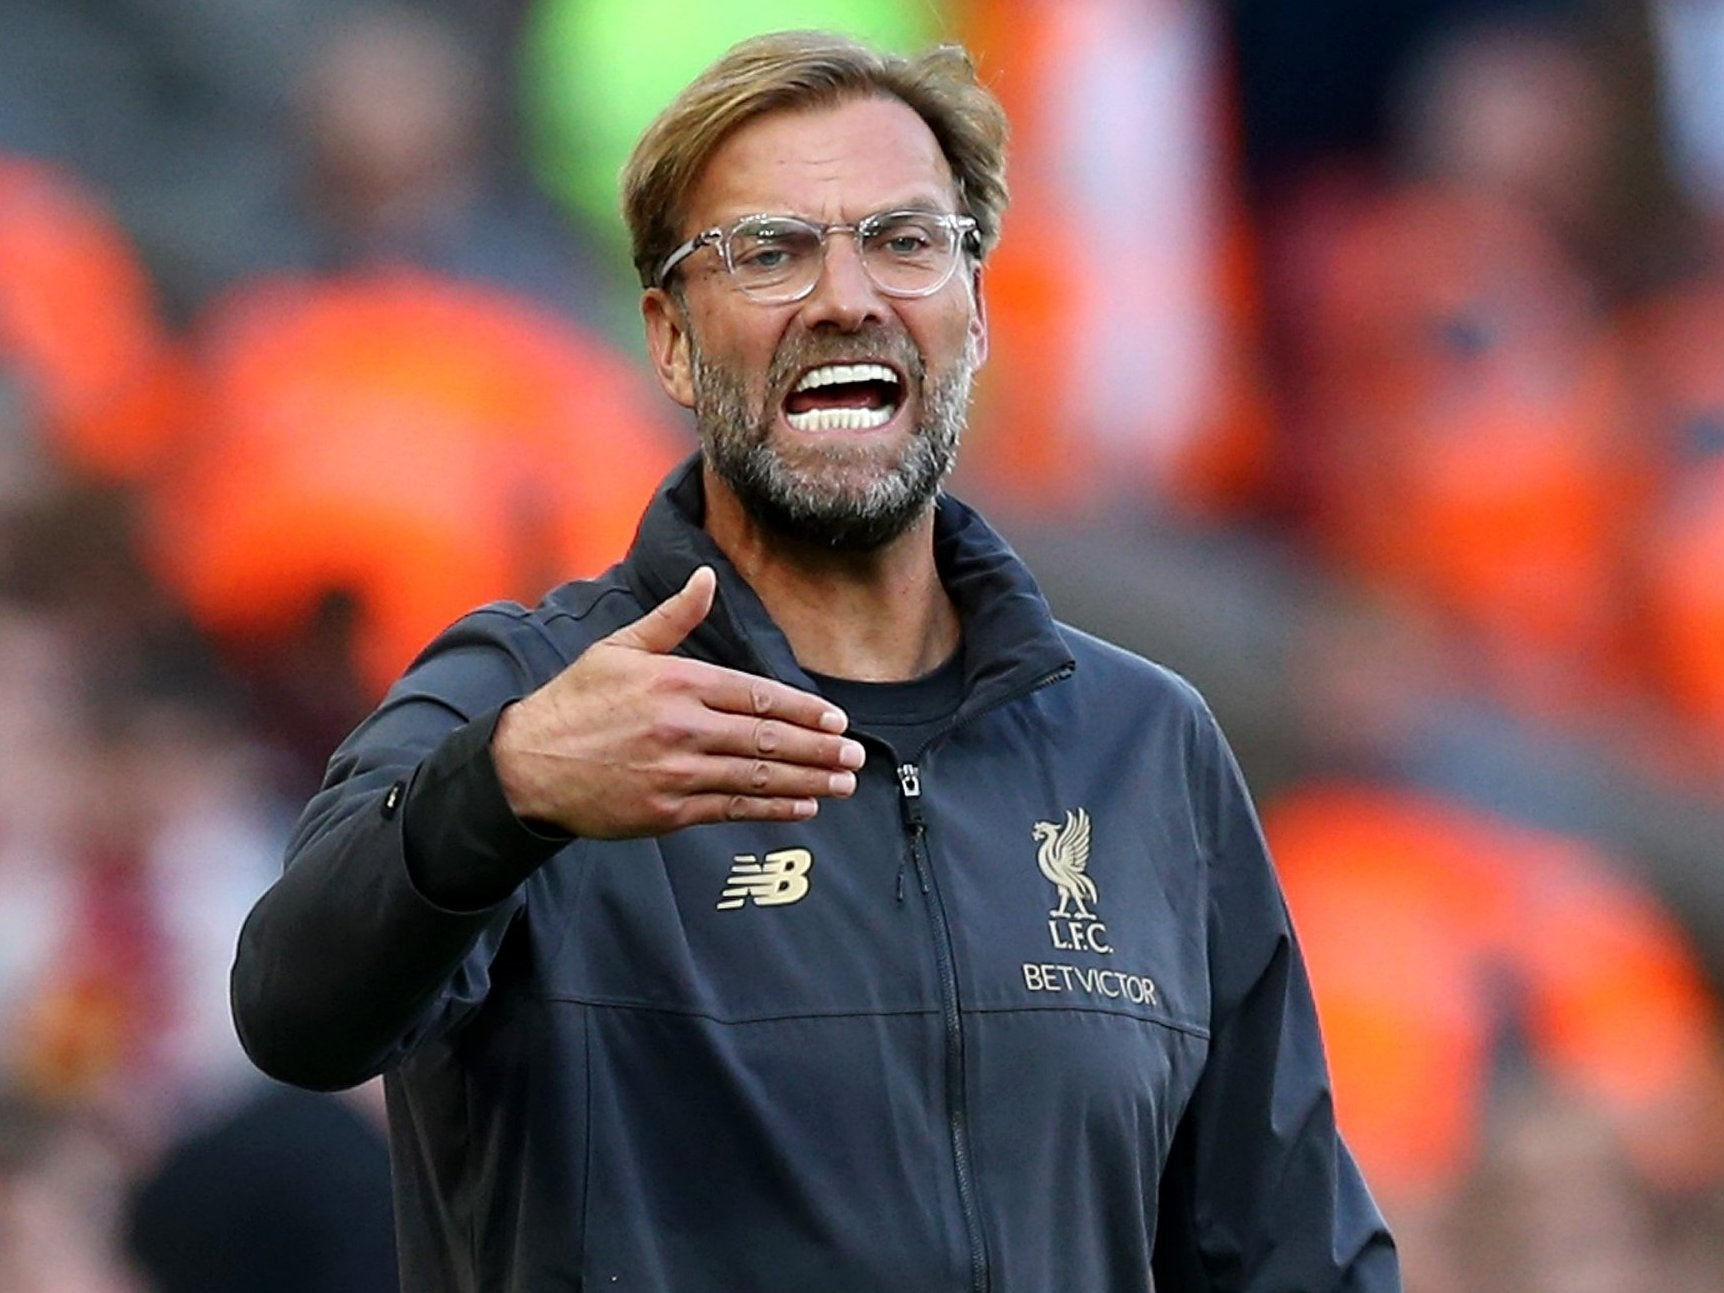 Jürgen Klopp criticises Gary Neville's 'office' views after suggesting Liverpool do not have the squad depth to rotate